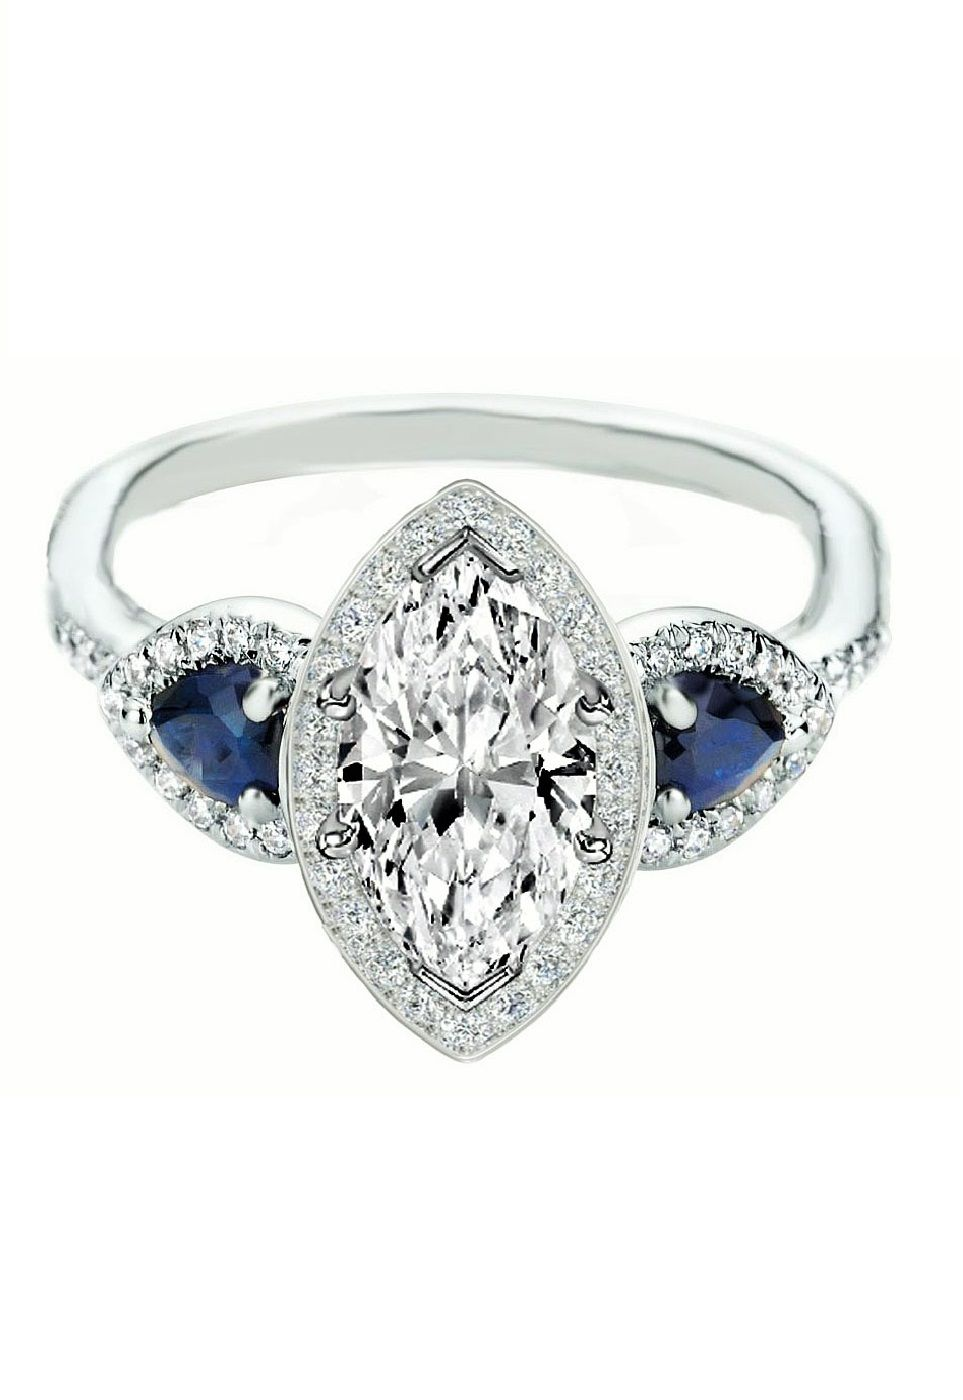 Art crafted engagement rings - Marquise Diamond Halo Engagement Ring Pear Shape Blue Sapphire Side Stones